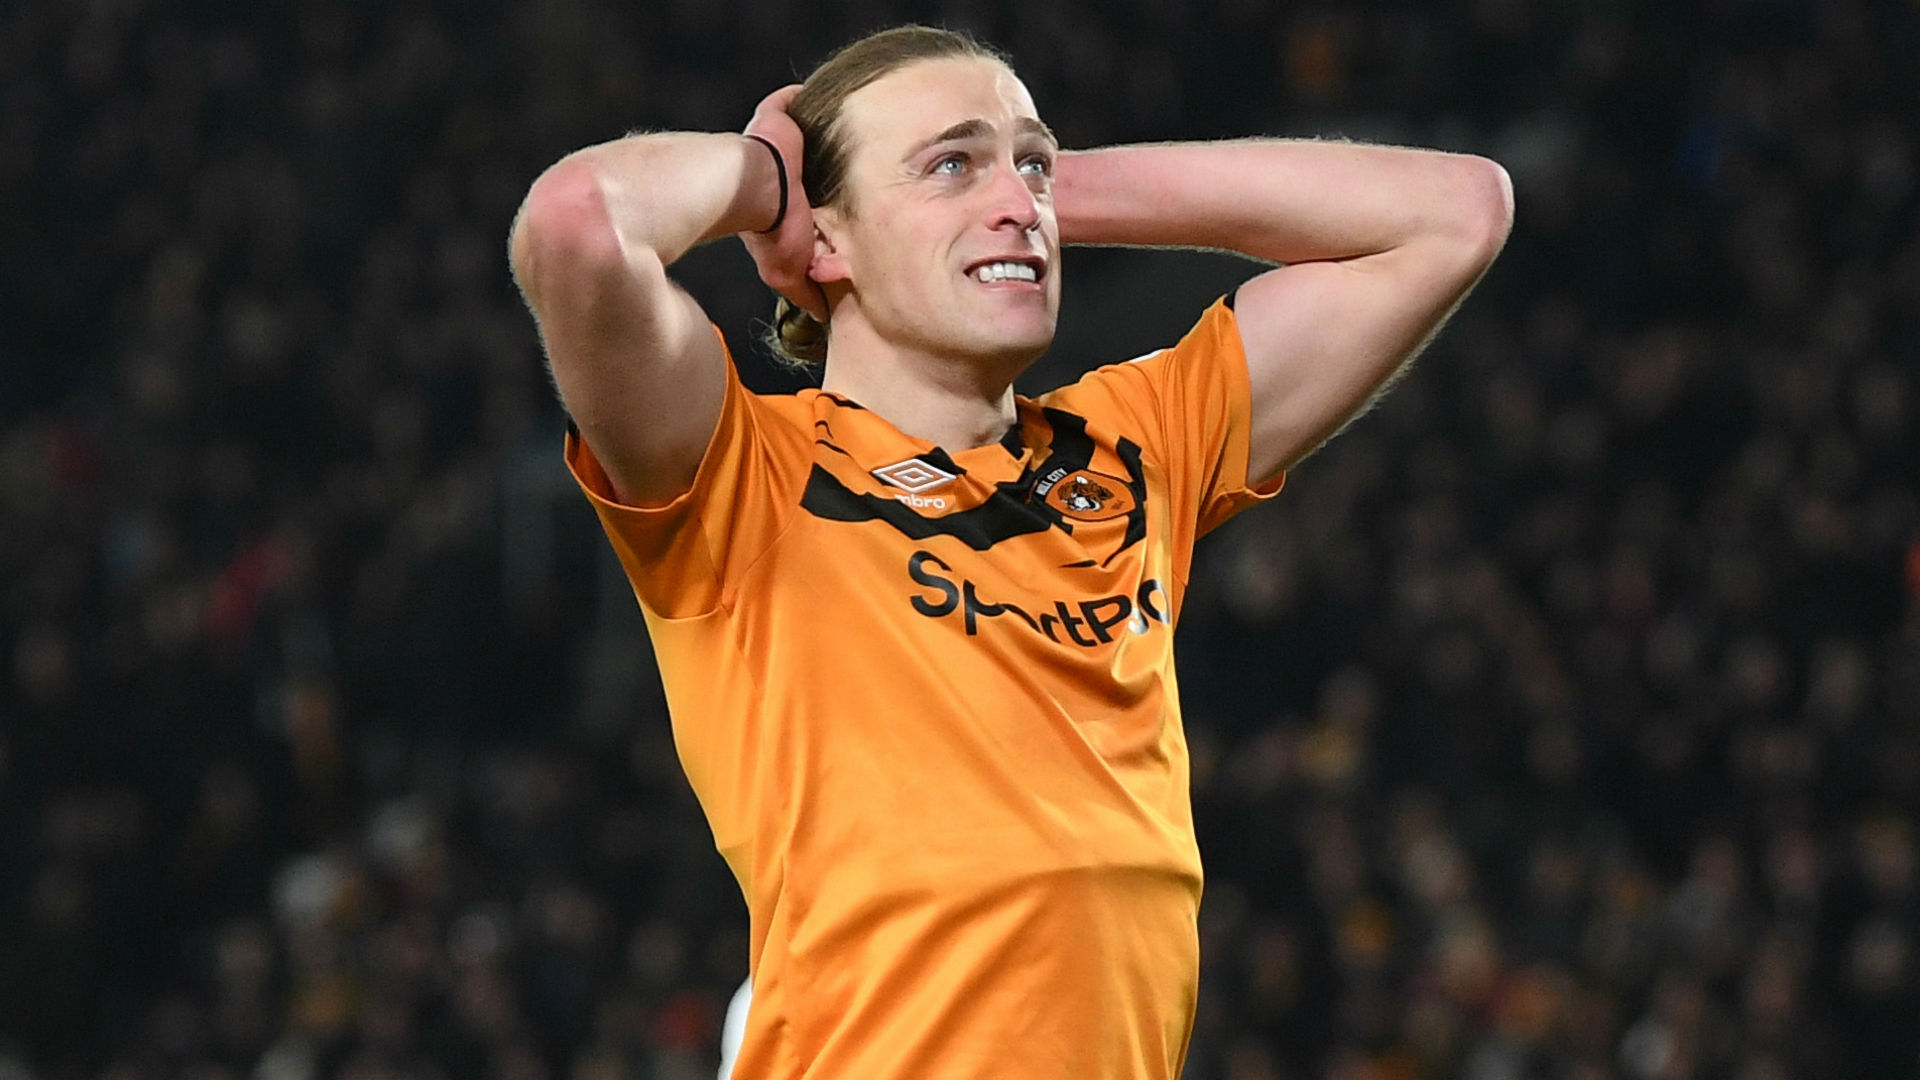 Hull City 4-4 Swansea City: Eaves drops in to deny Swans in Championship thriller